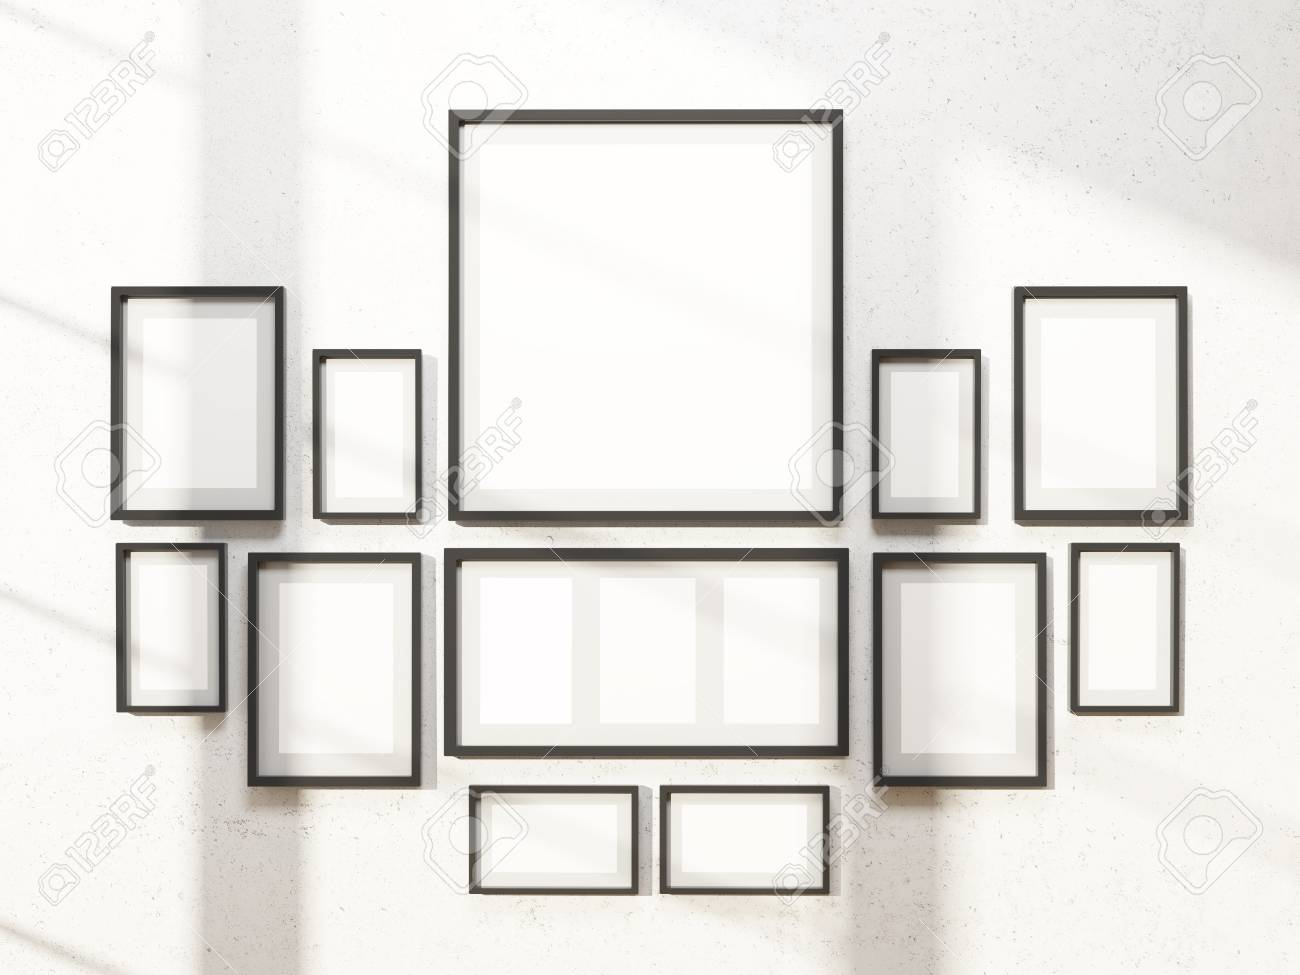 Many White Frames On Wall, Symmetrical. Concept Of Exhibition ...